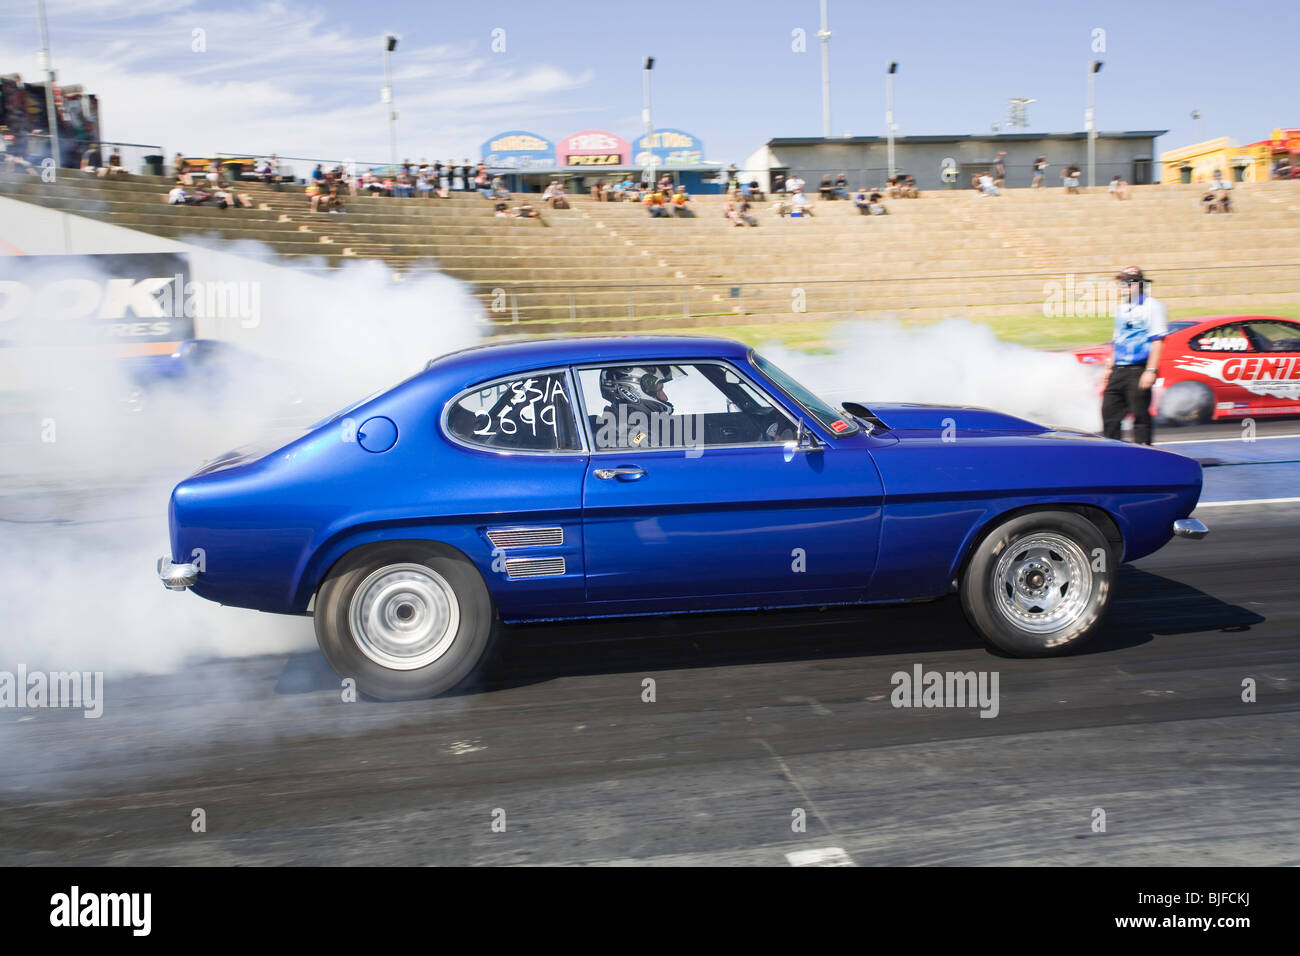 Ford Capri drag racing car performing a tire smoking burnout at the Perth Motorplex drag racing venue in Western - Stock Image